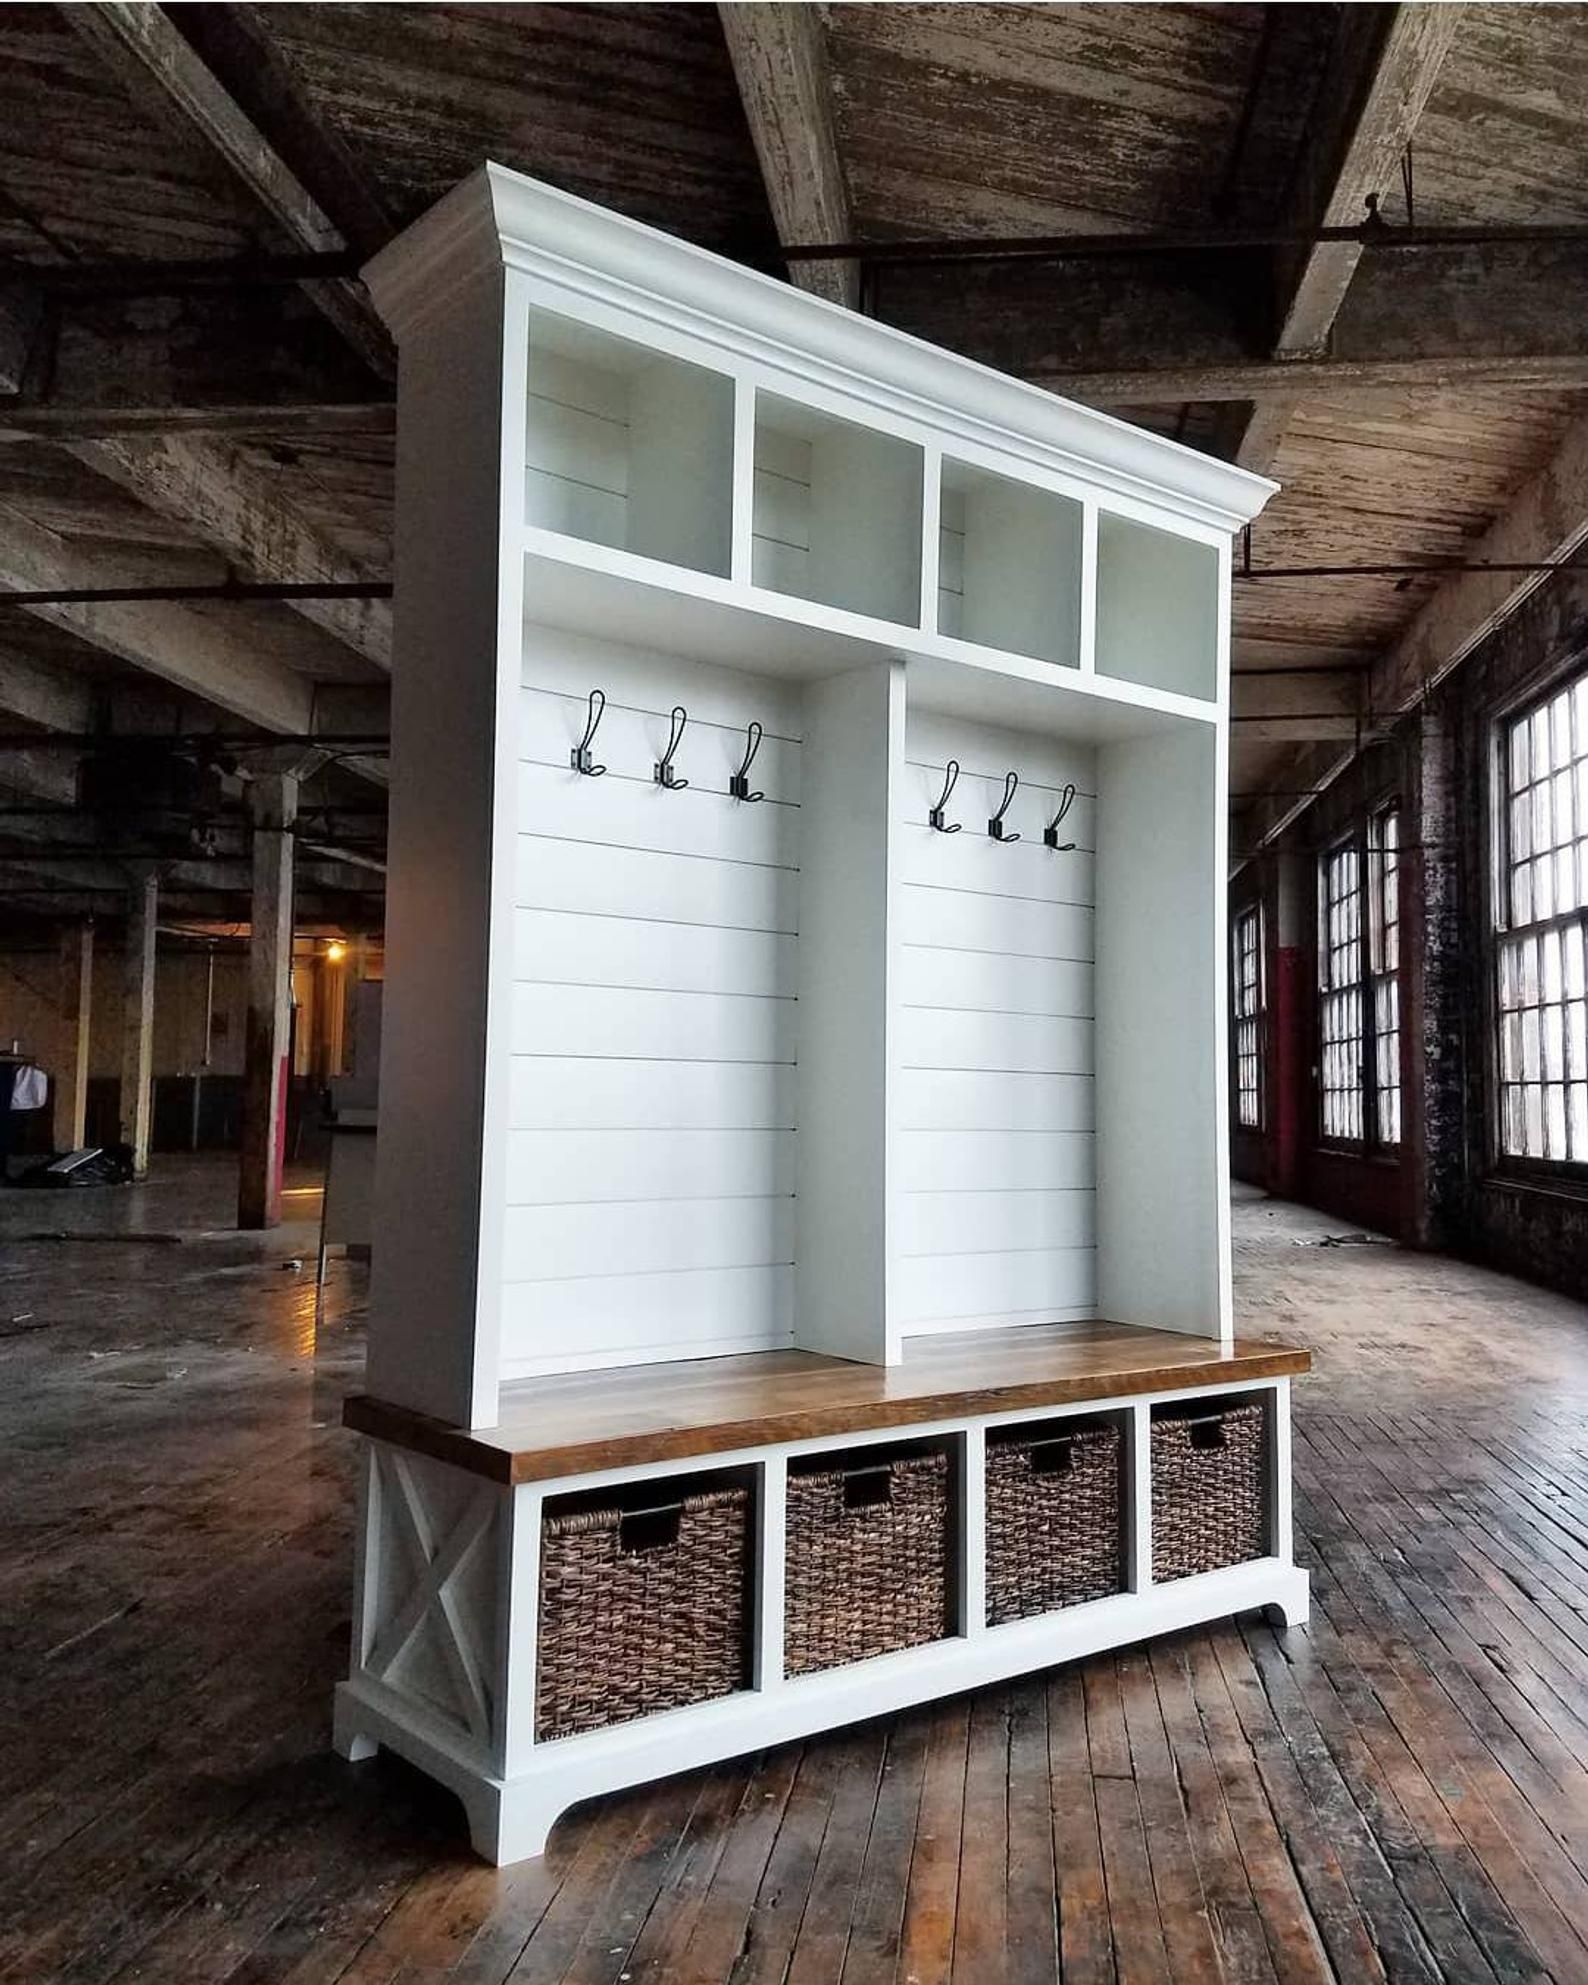 The Memphis Mudroom Lockers Bench Storage Farmhouse Furniture Cubbies Coat Rack Hall Tree Reclaimed Rustic Farmhouse With Images Mudroom Lockers Farmhouse Furniture Mudroom Furniture